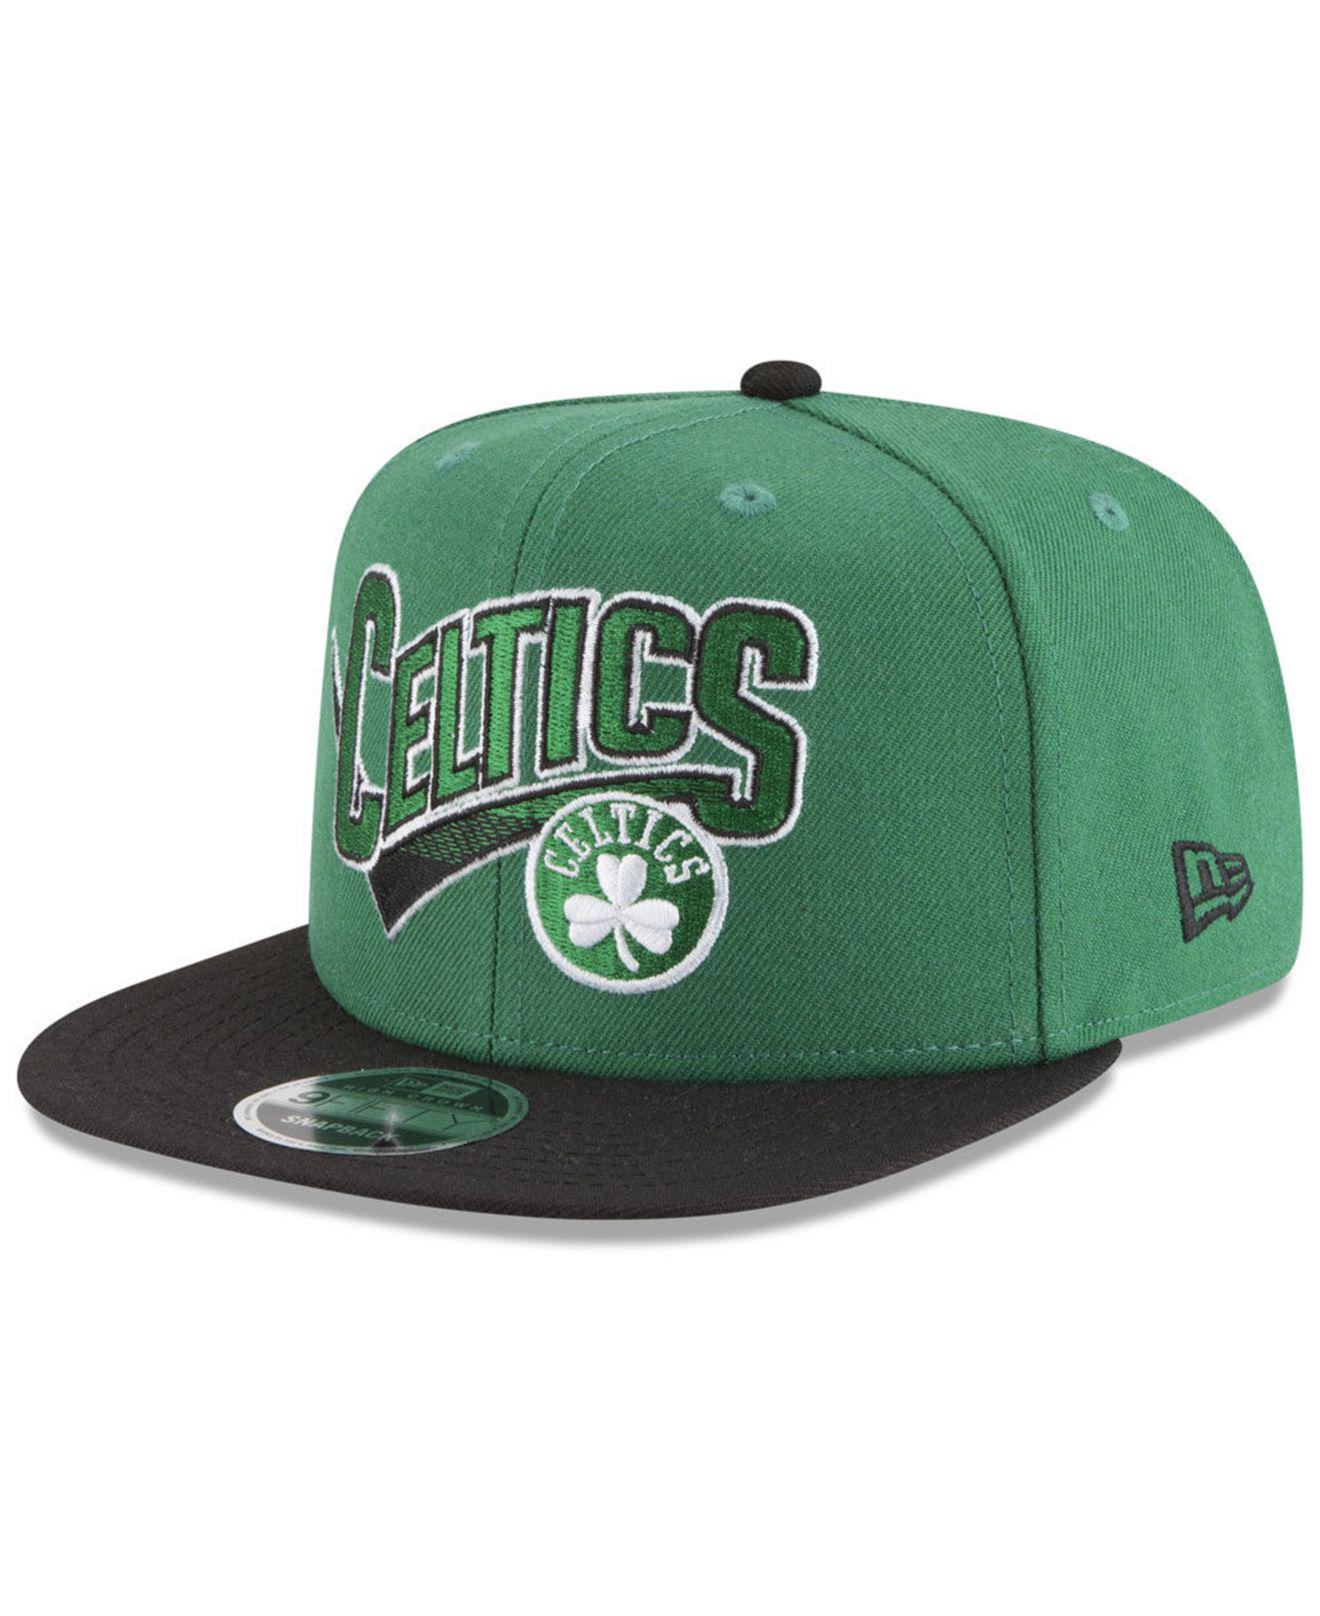 the best attitude 6d3b1 1bbd3 KTZ. Men s Green Boston Celtics Retro Tail 9fifty Snapback Cap